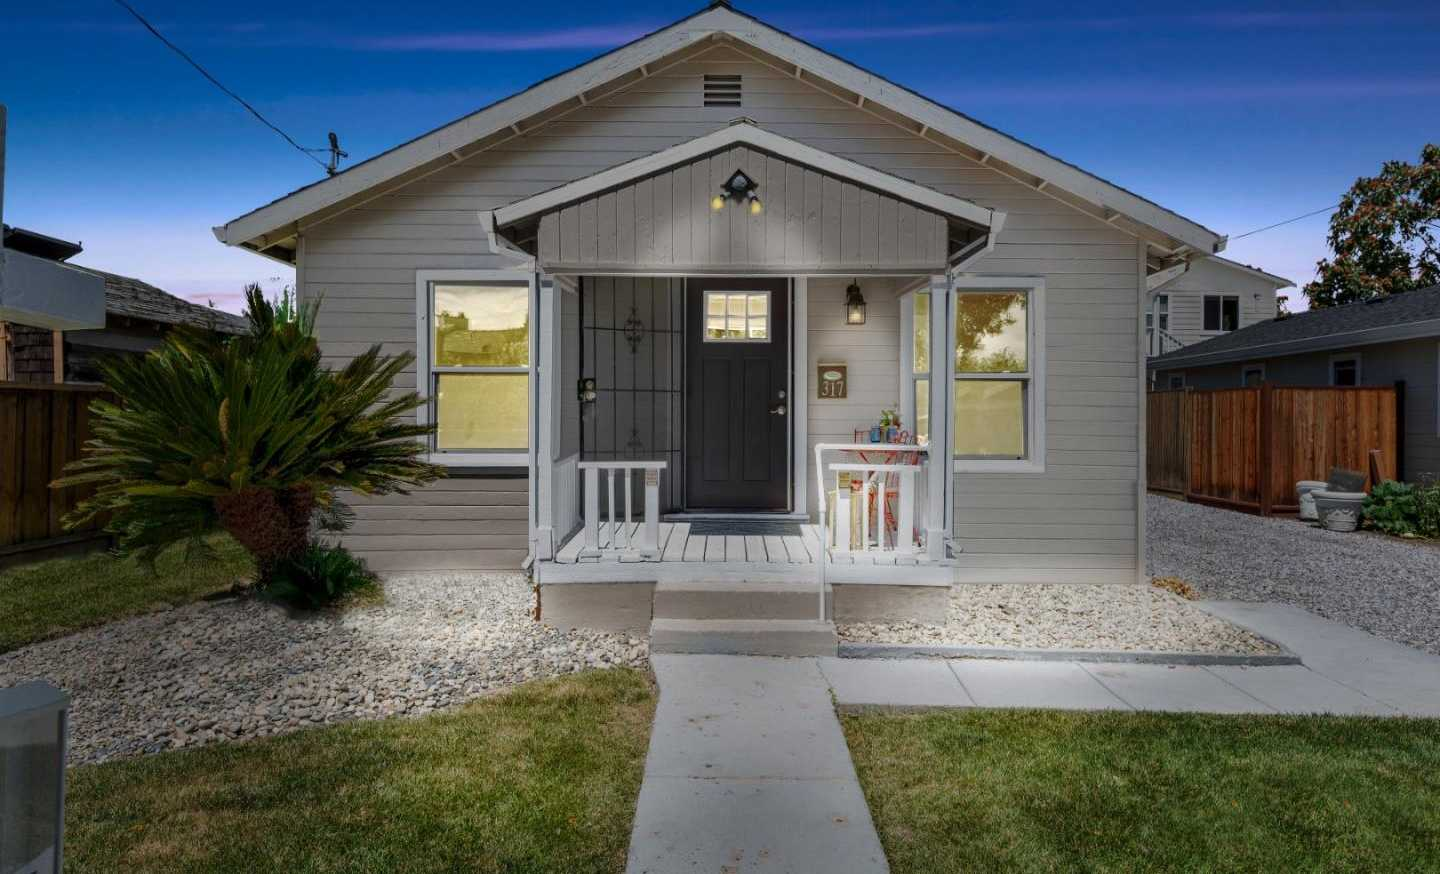 $1,099,000 - 2Br/1Ba -  for Sale in Sunnyvale